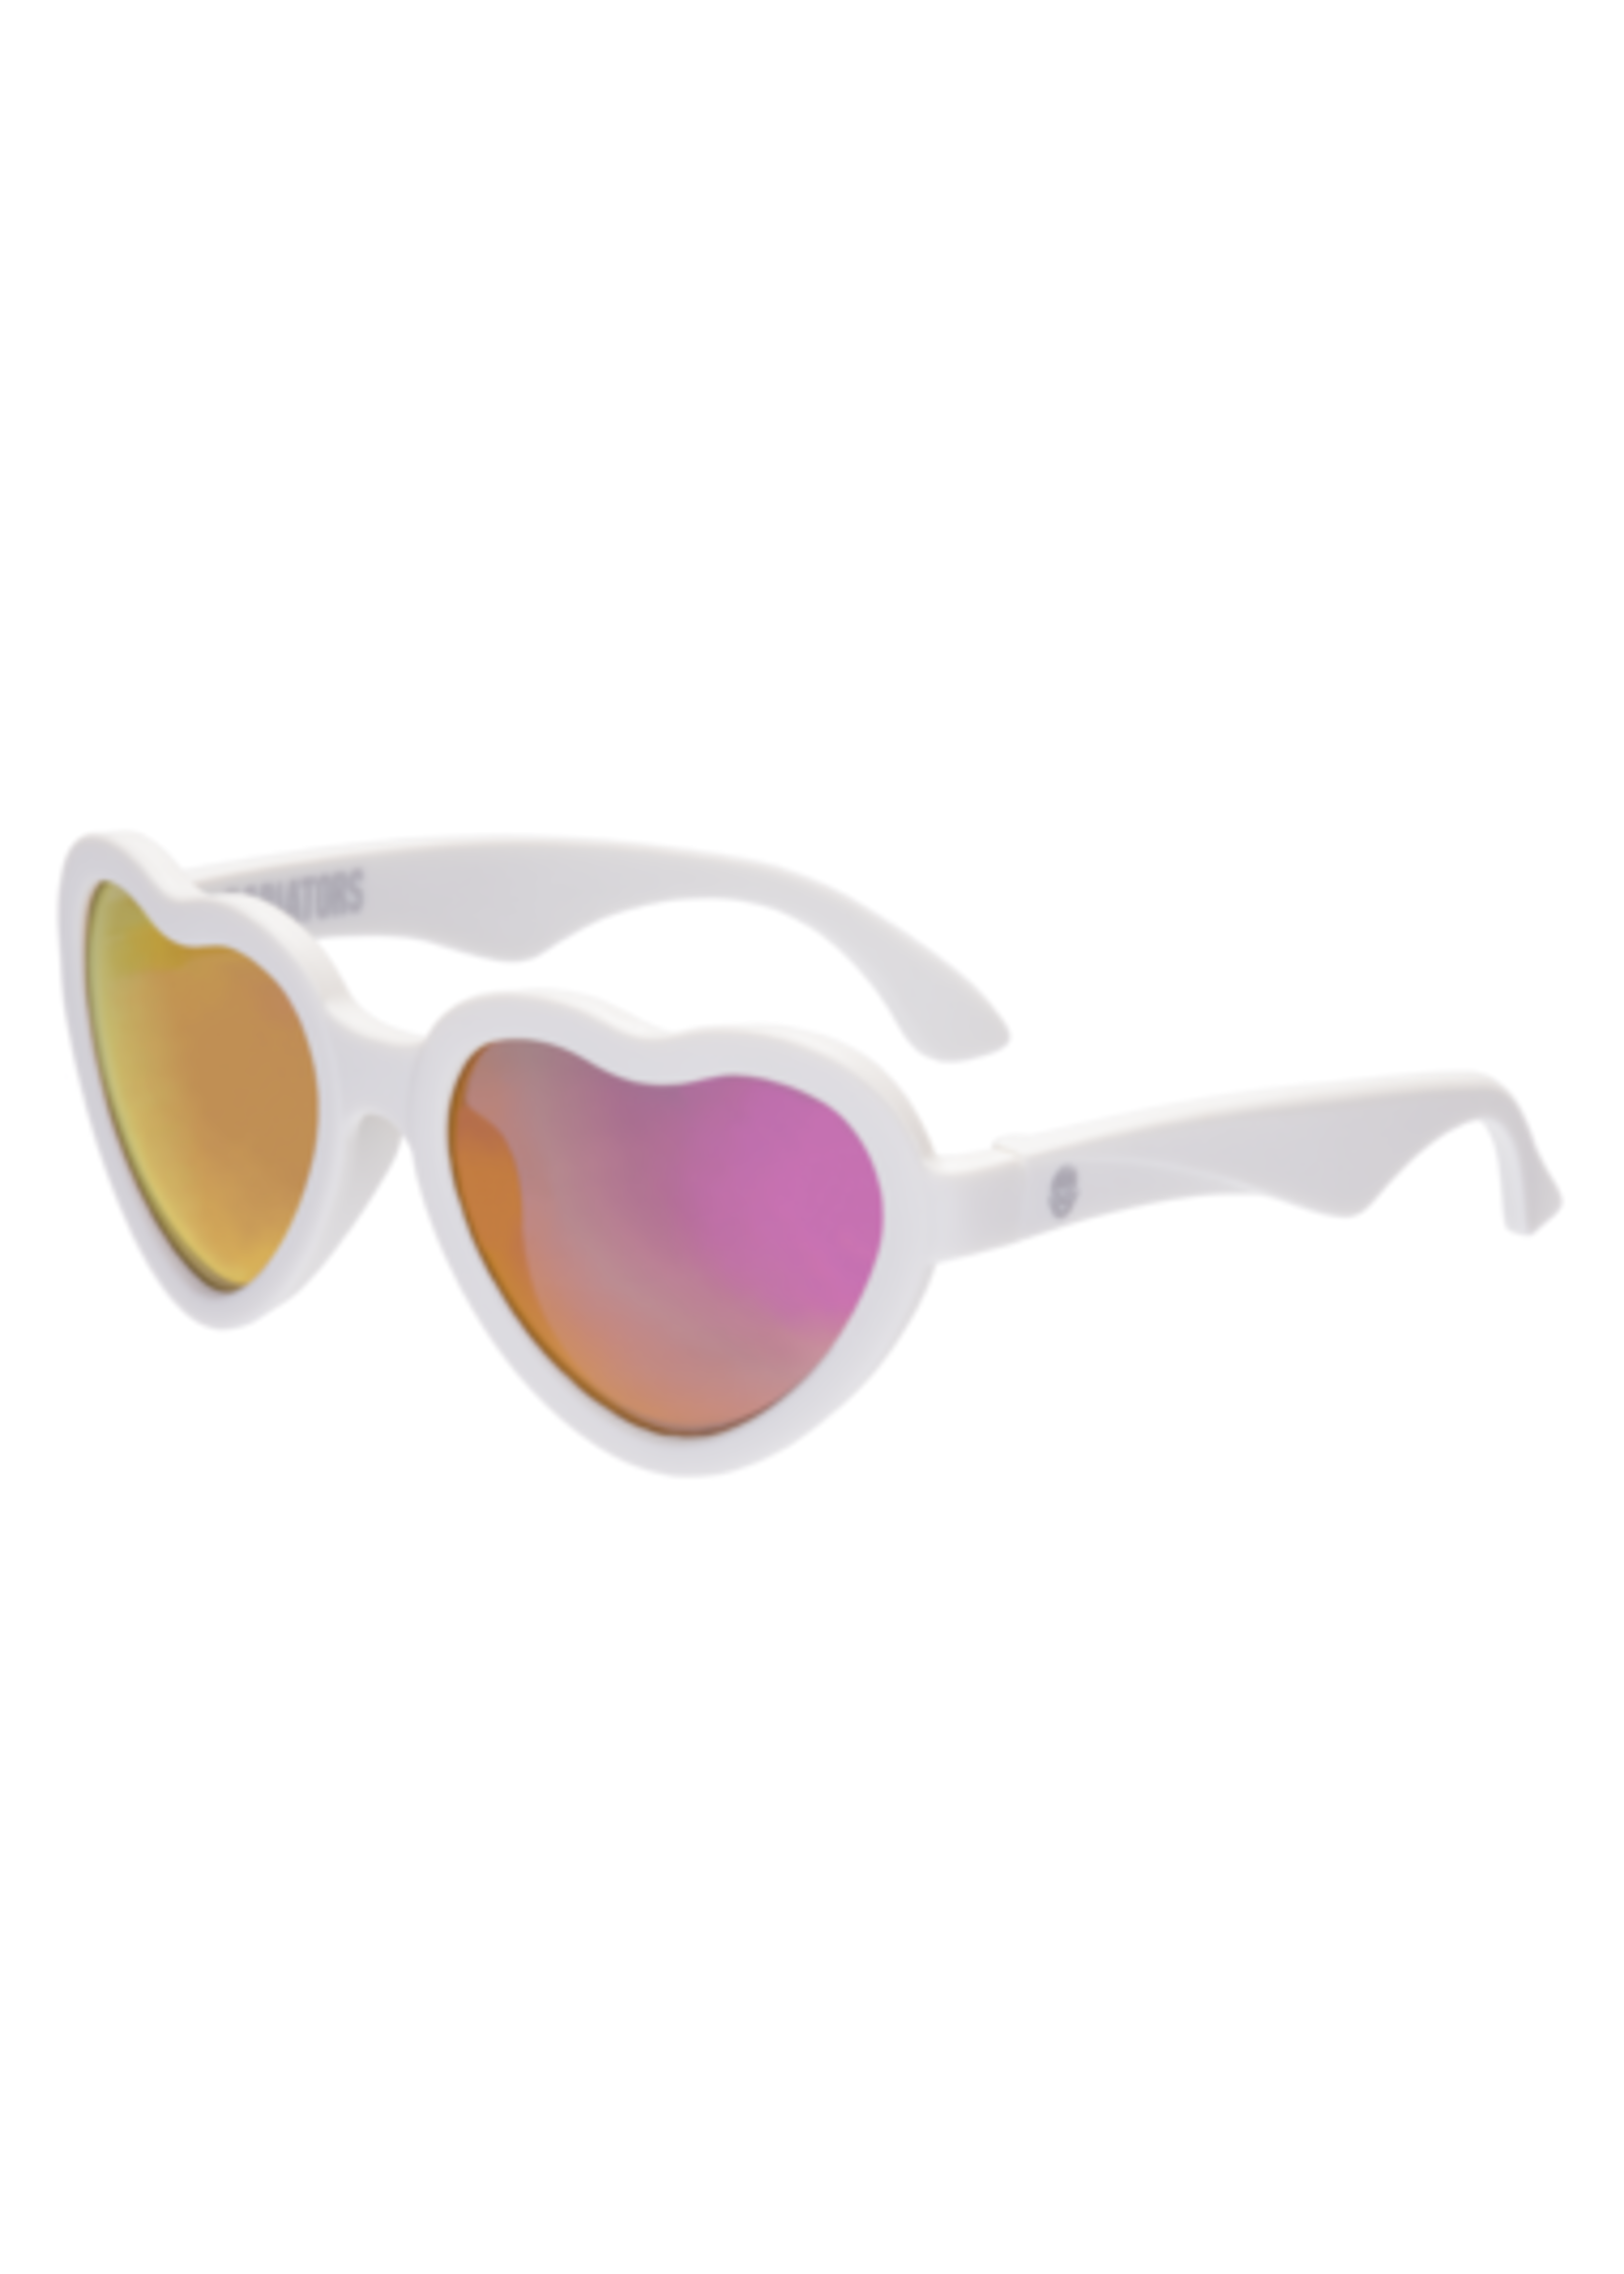 babiators Babiators Polarized Sunglasses 3-5